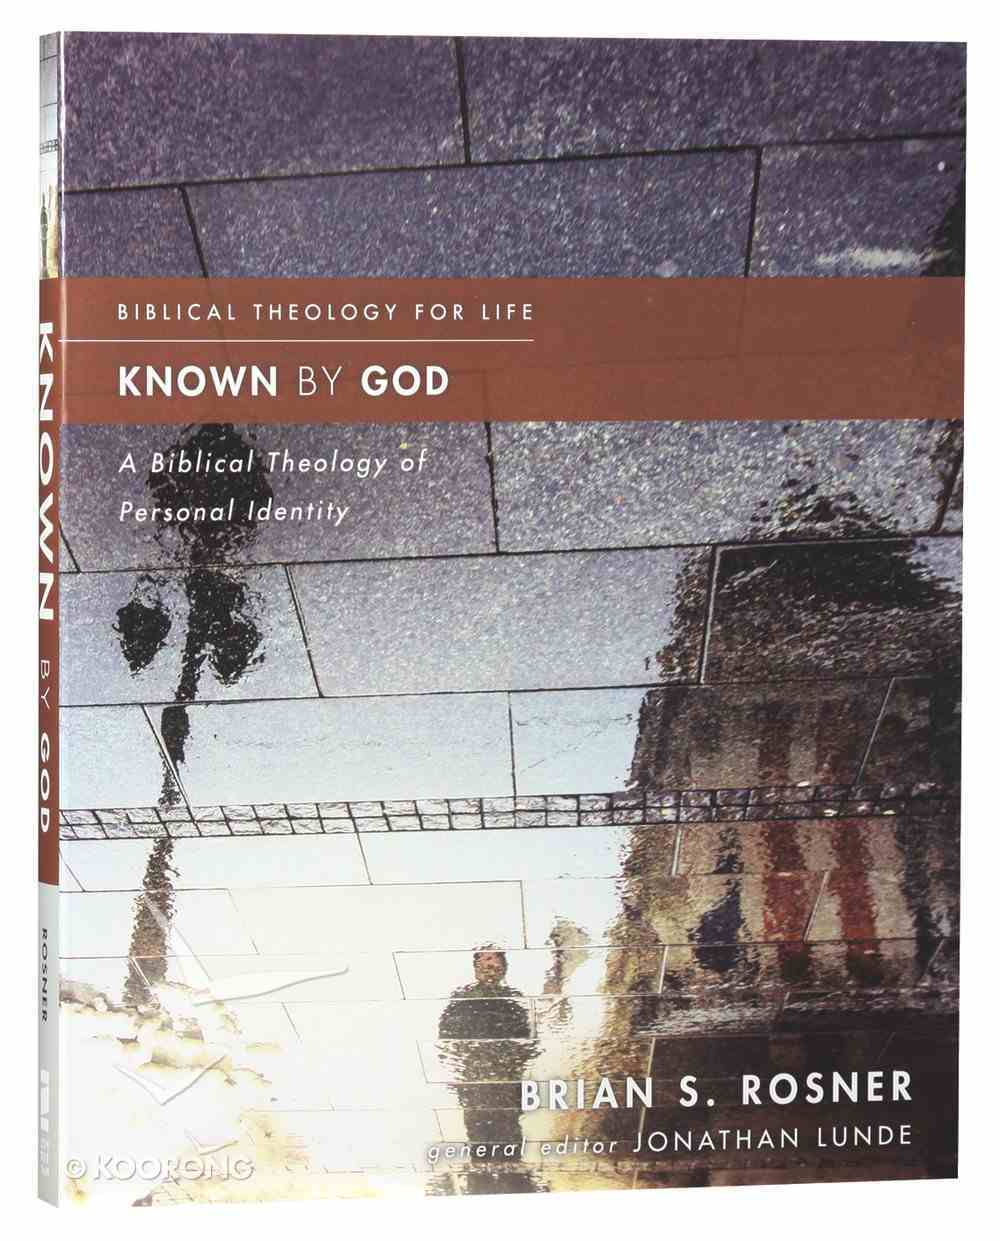 Known By God: A Biblical Theology of Personal Identity (Biblical Theology For Life Series) Paperback